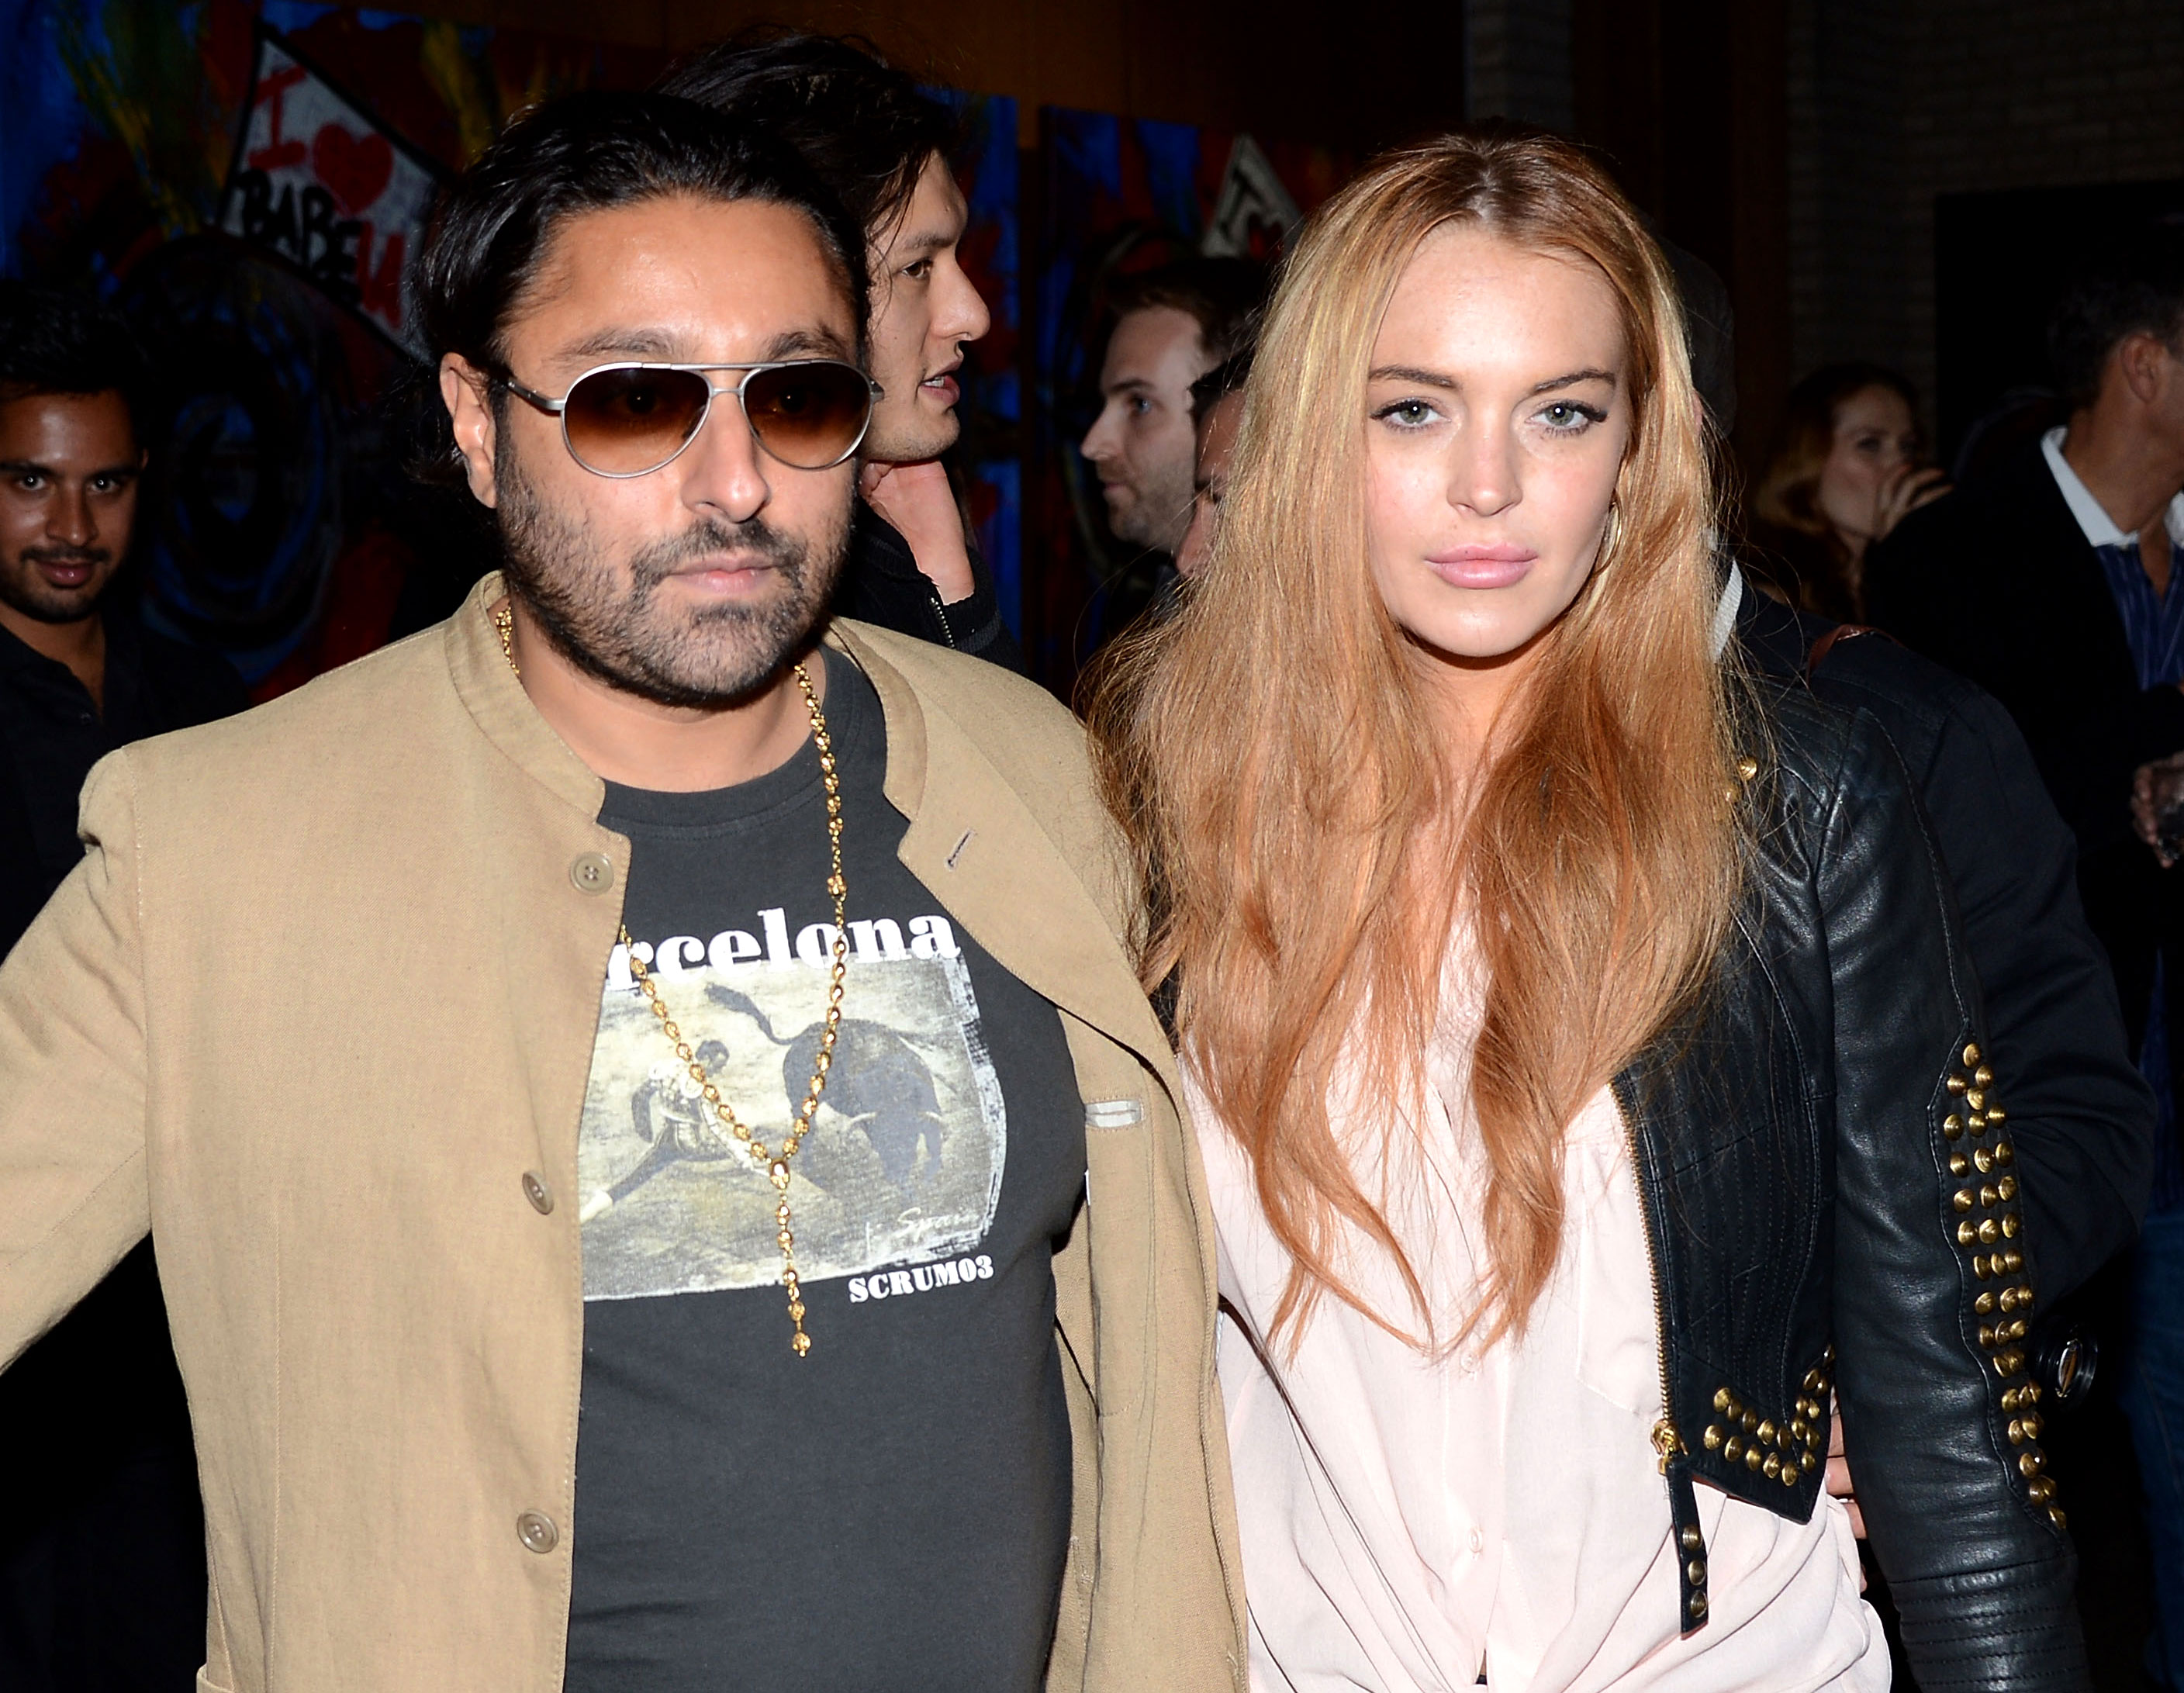 Lindsay Lohan love life gallery - The hotelier, another of Lohan's reported flings, was spotted going out to dinner with the actress in New York City in 2013.